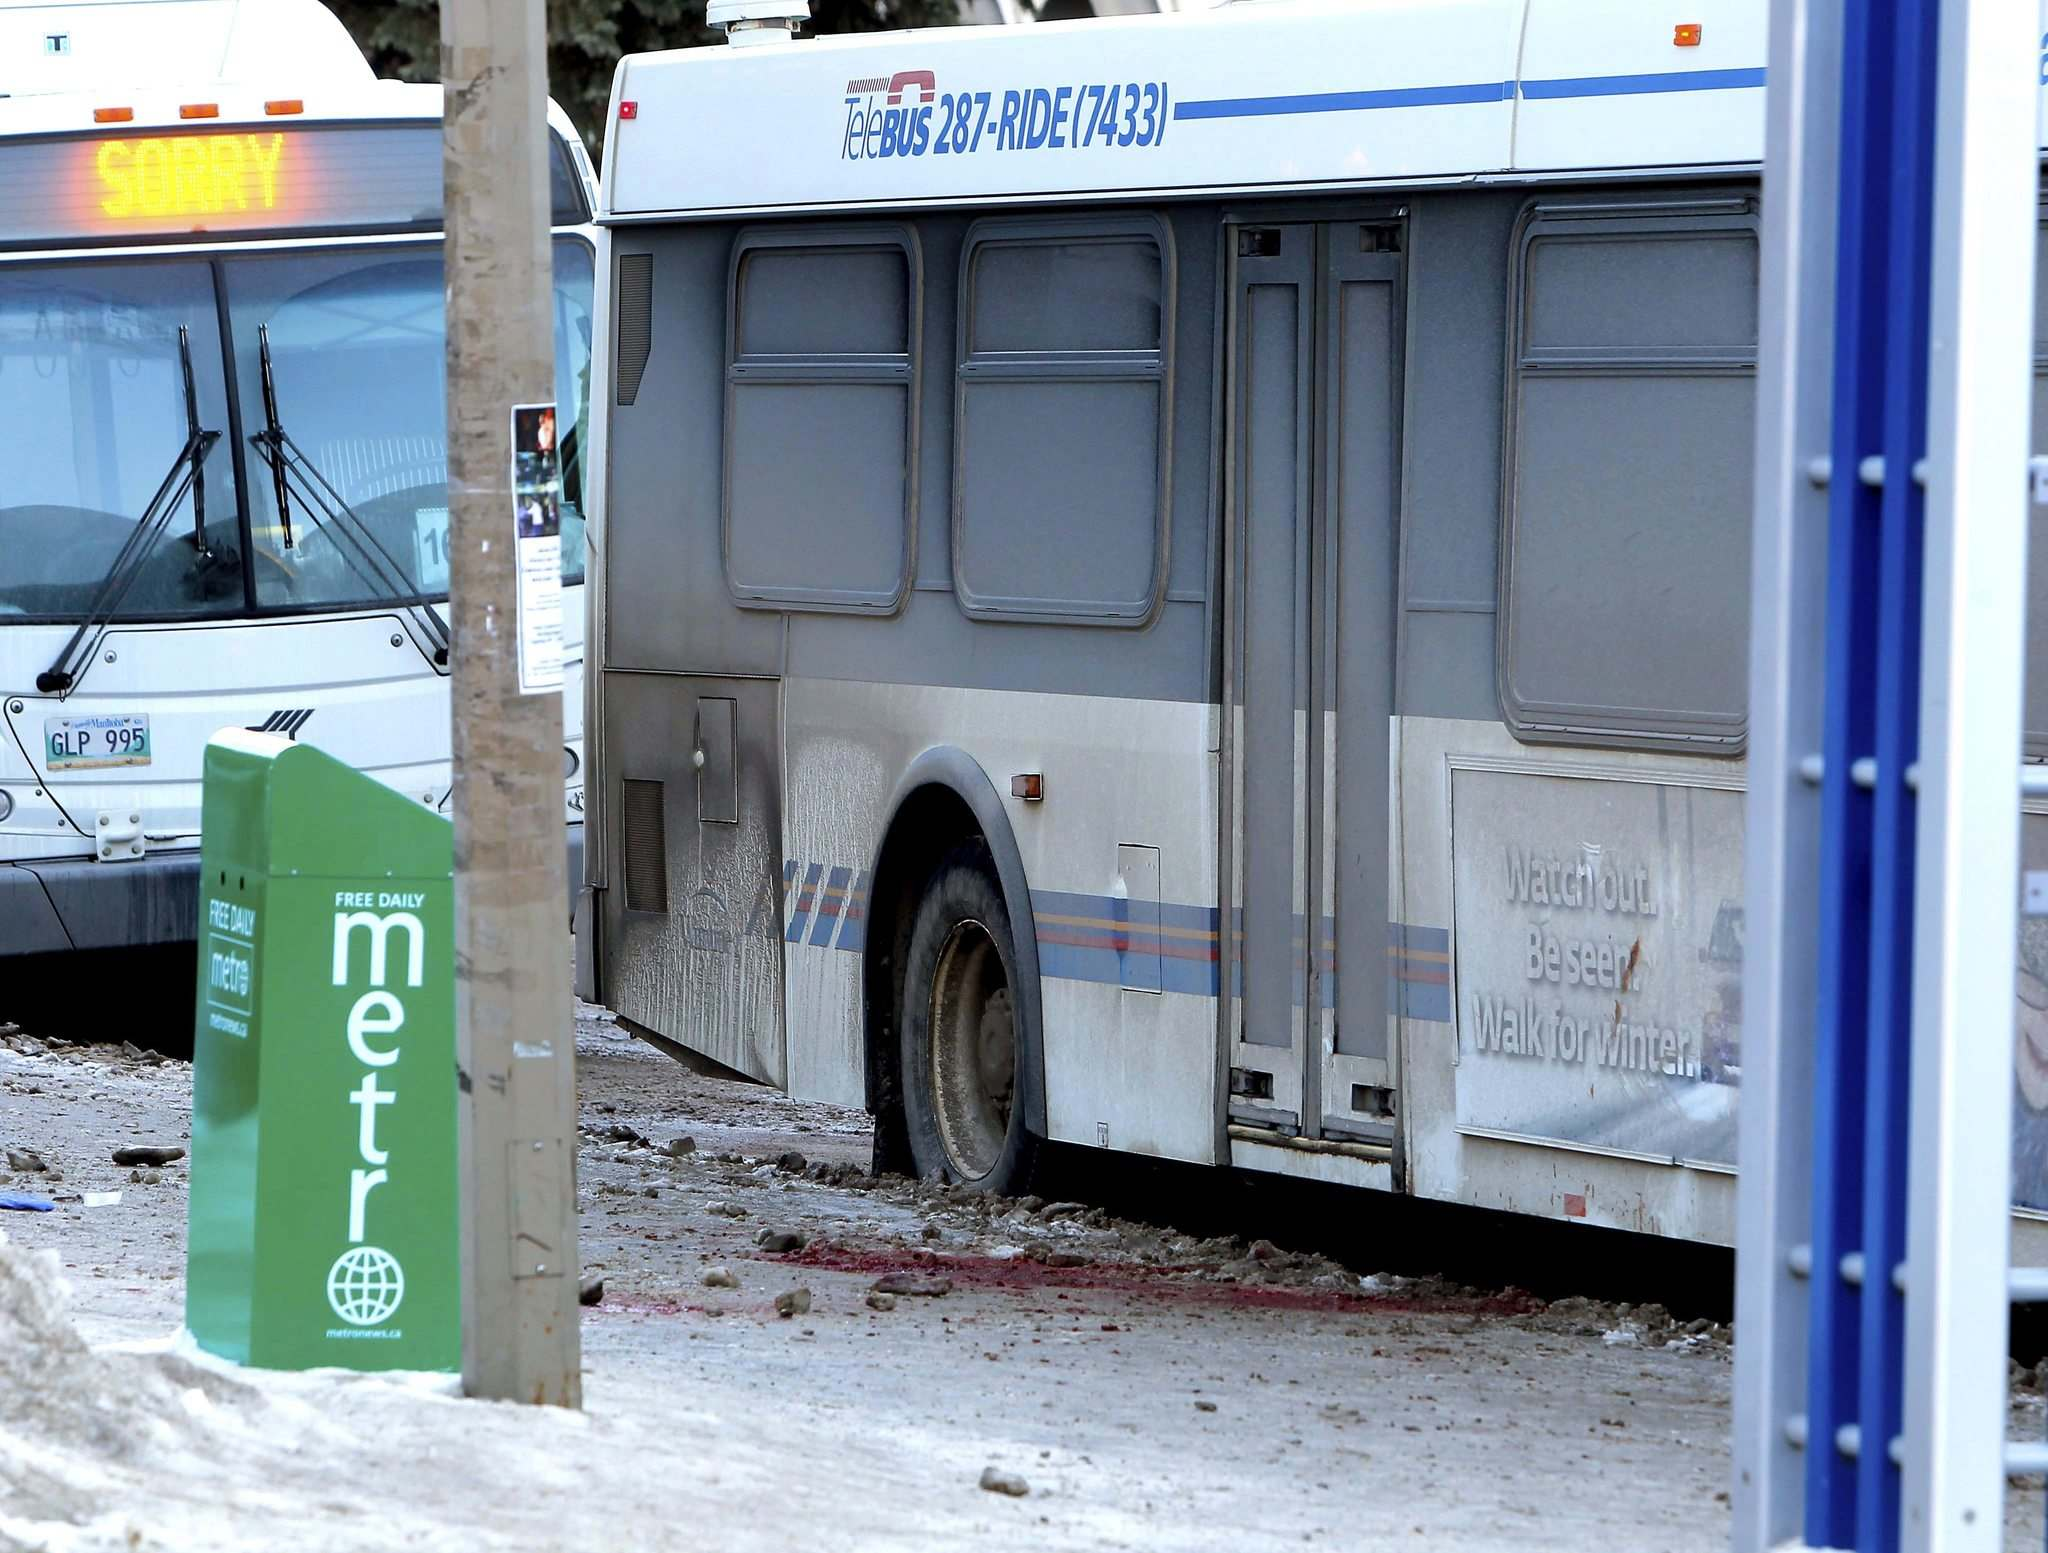 A blood-soaked sidewalk remains as police investigate at the scene of a fatal stabbing of a bus driver at the University of Manitoba.